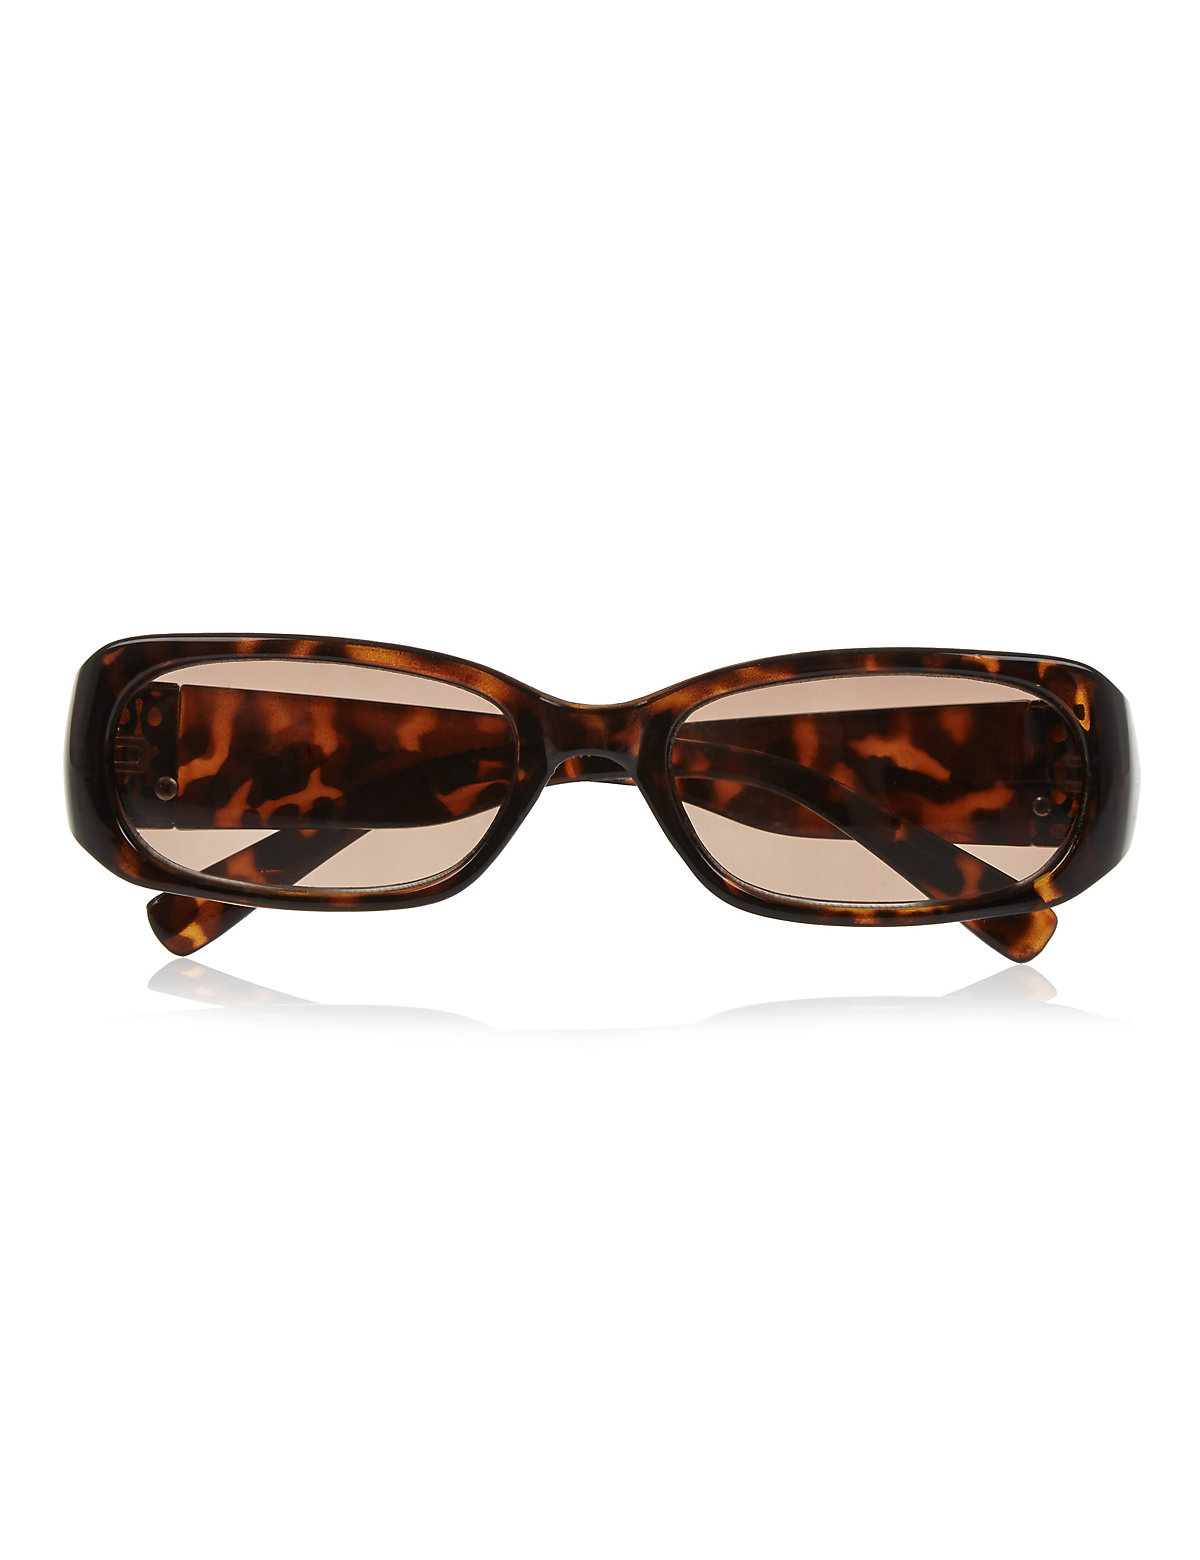 Large Mock Tortoiseshell Reading Sunglasses Brown 175